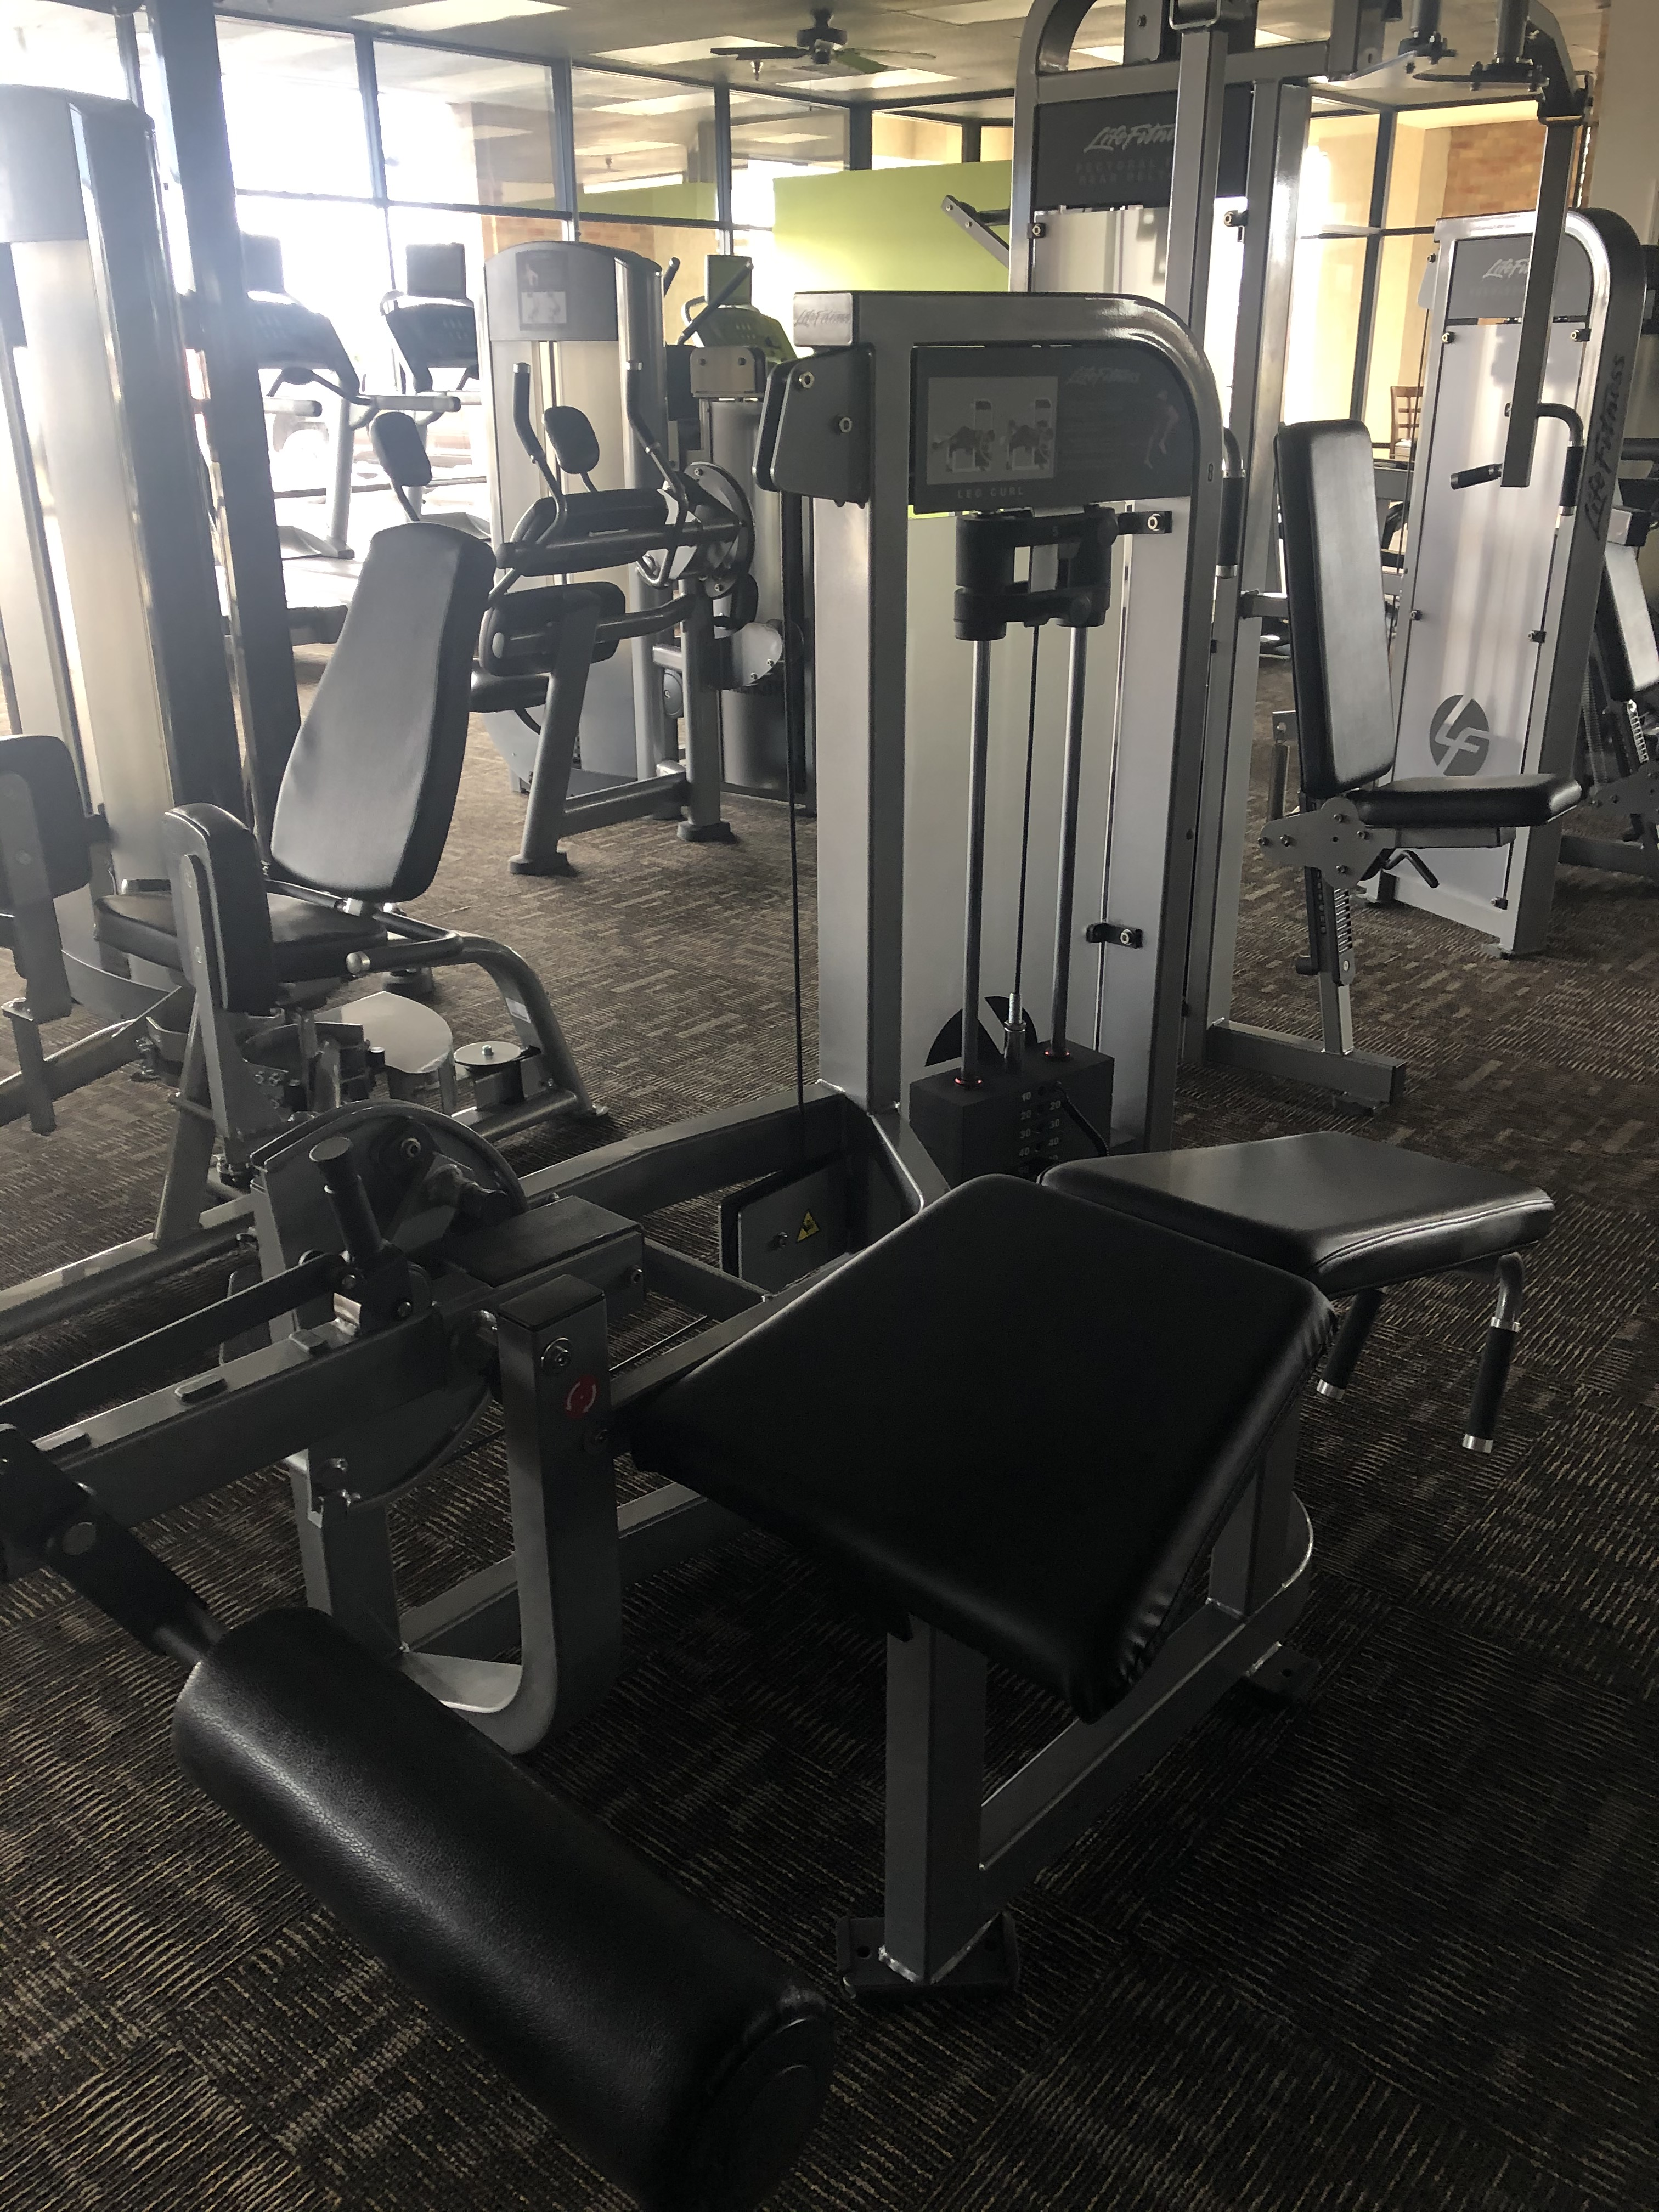 Absolute Auction | Anytime Fitness Center Equipment | Saturday, June 27th @ 1:00 pm EDT